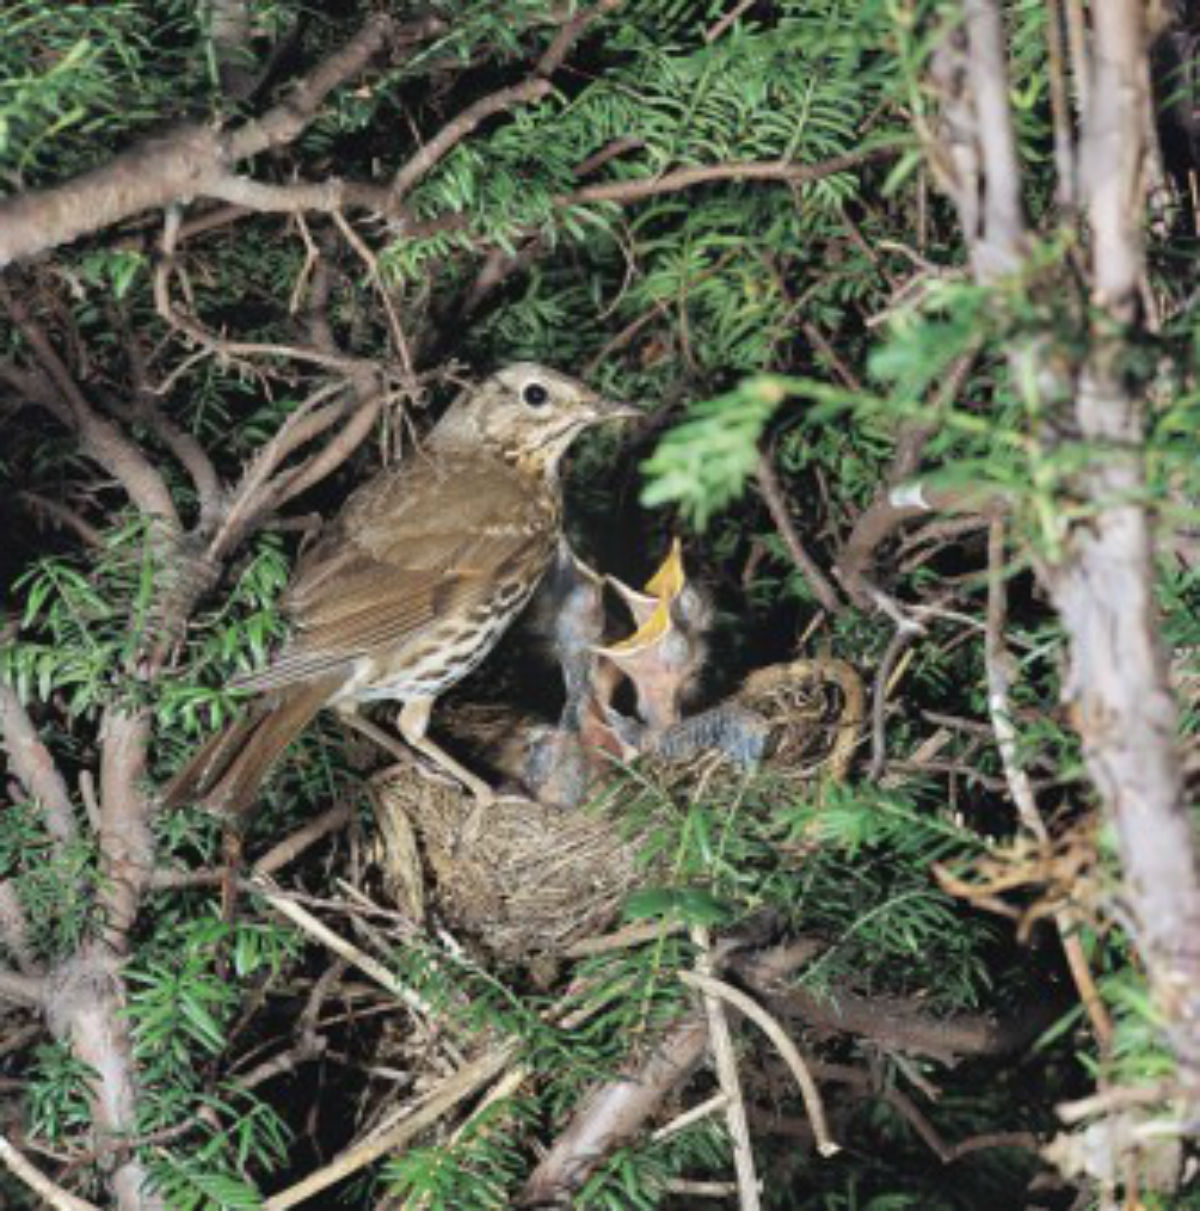 Keep away from baby birds says RSPB